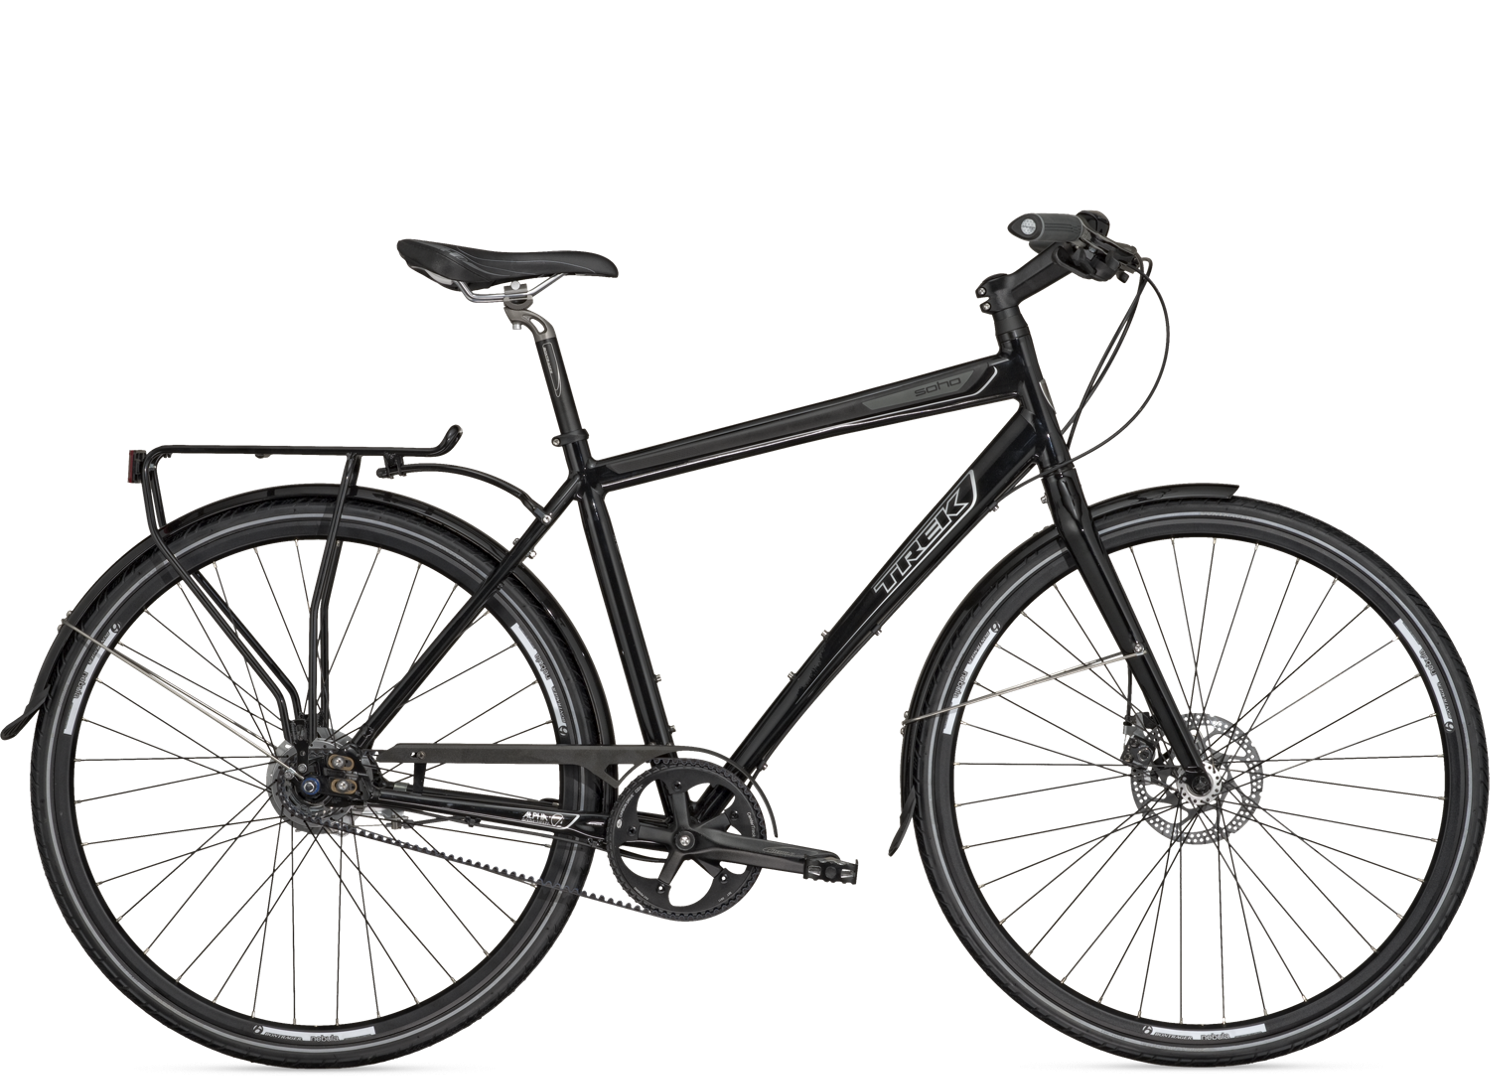 A Low Maintenance Commuter Bike Sohodlx Trekbikes